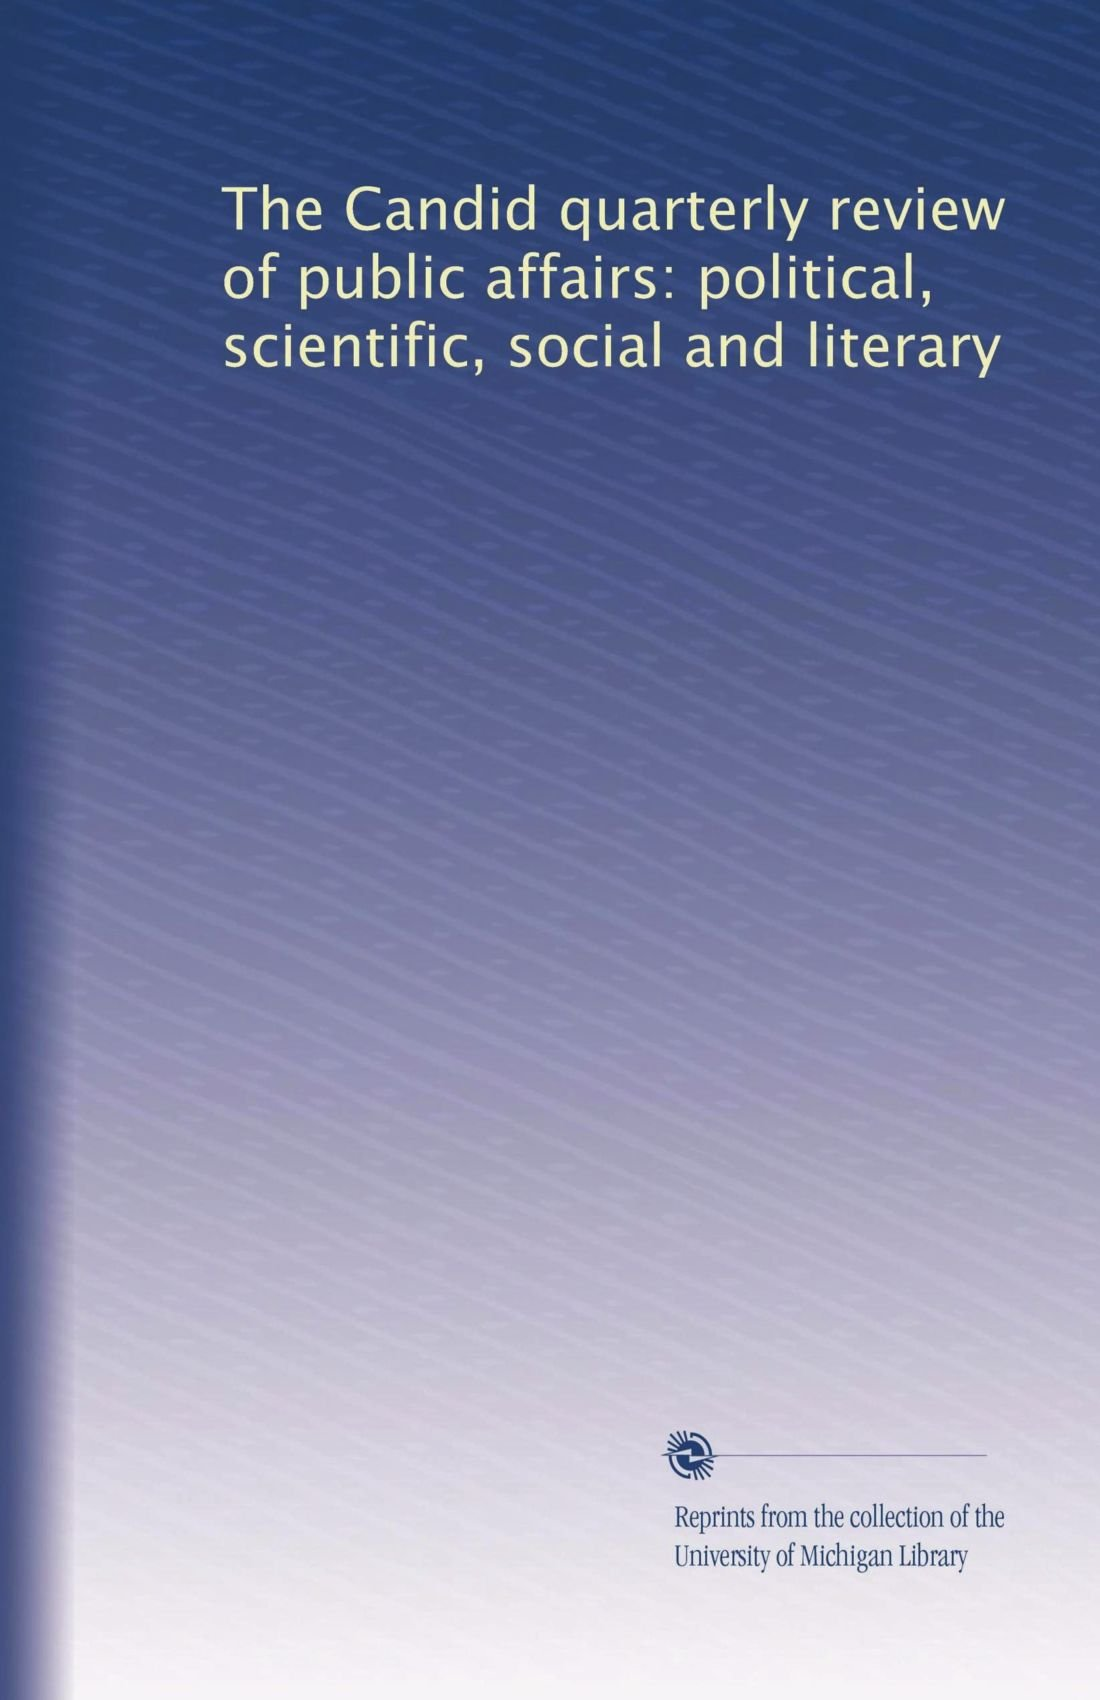 The Candid quarterly review of public affairs: political, scientific, social and literary ebook